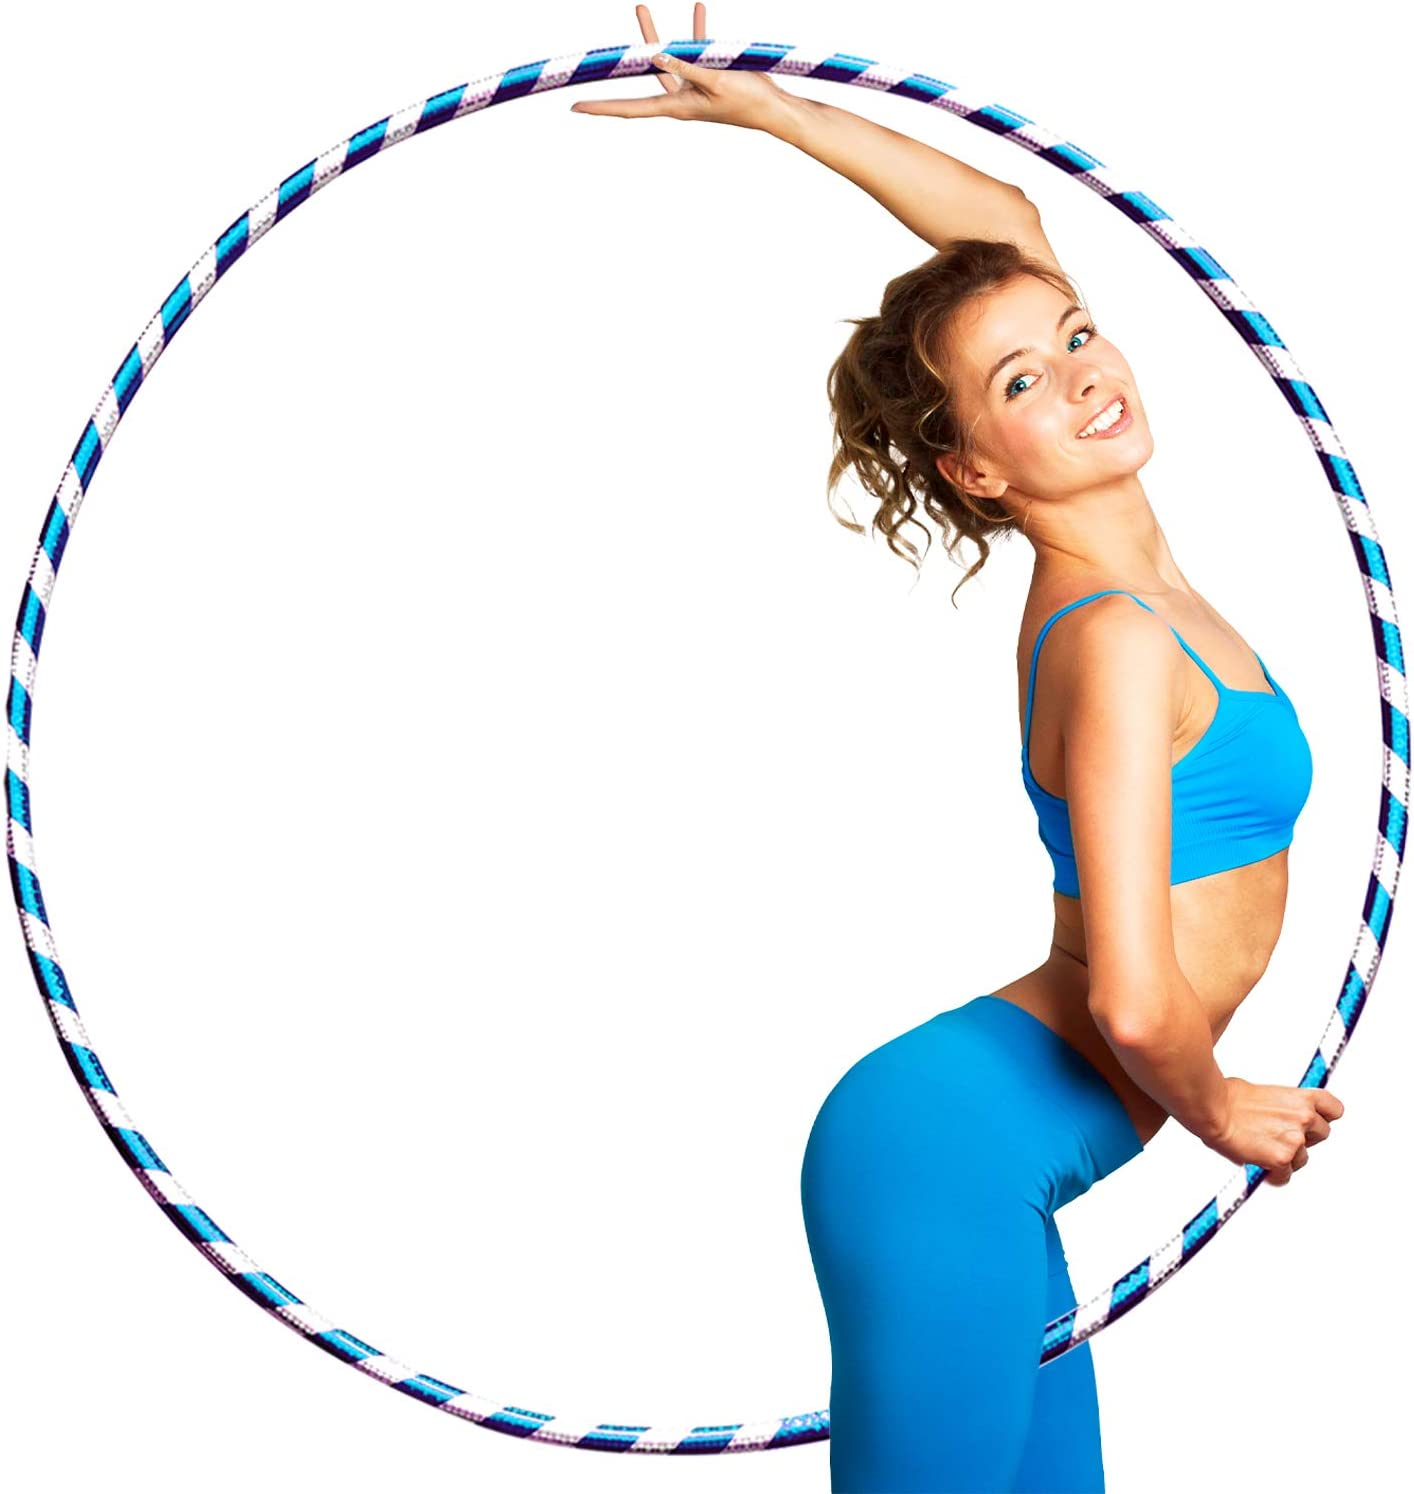 JD Linens Weight Loss Hula Hoop GLITTER Hula Hoops For Adults Women Men Fitness Adult Hoola Hoop Exercise Dance Workout Equipment FREE SKIPPING ROPE